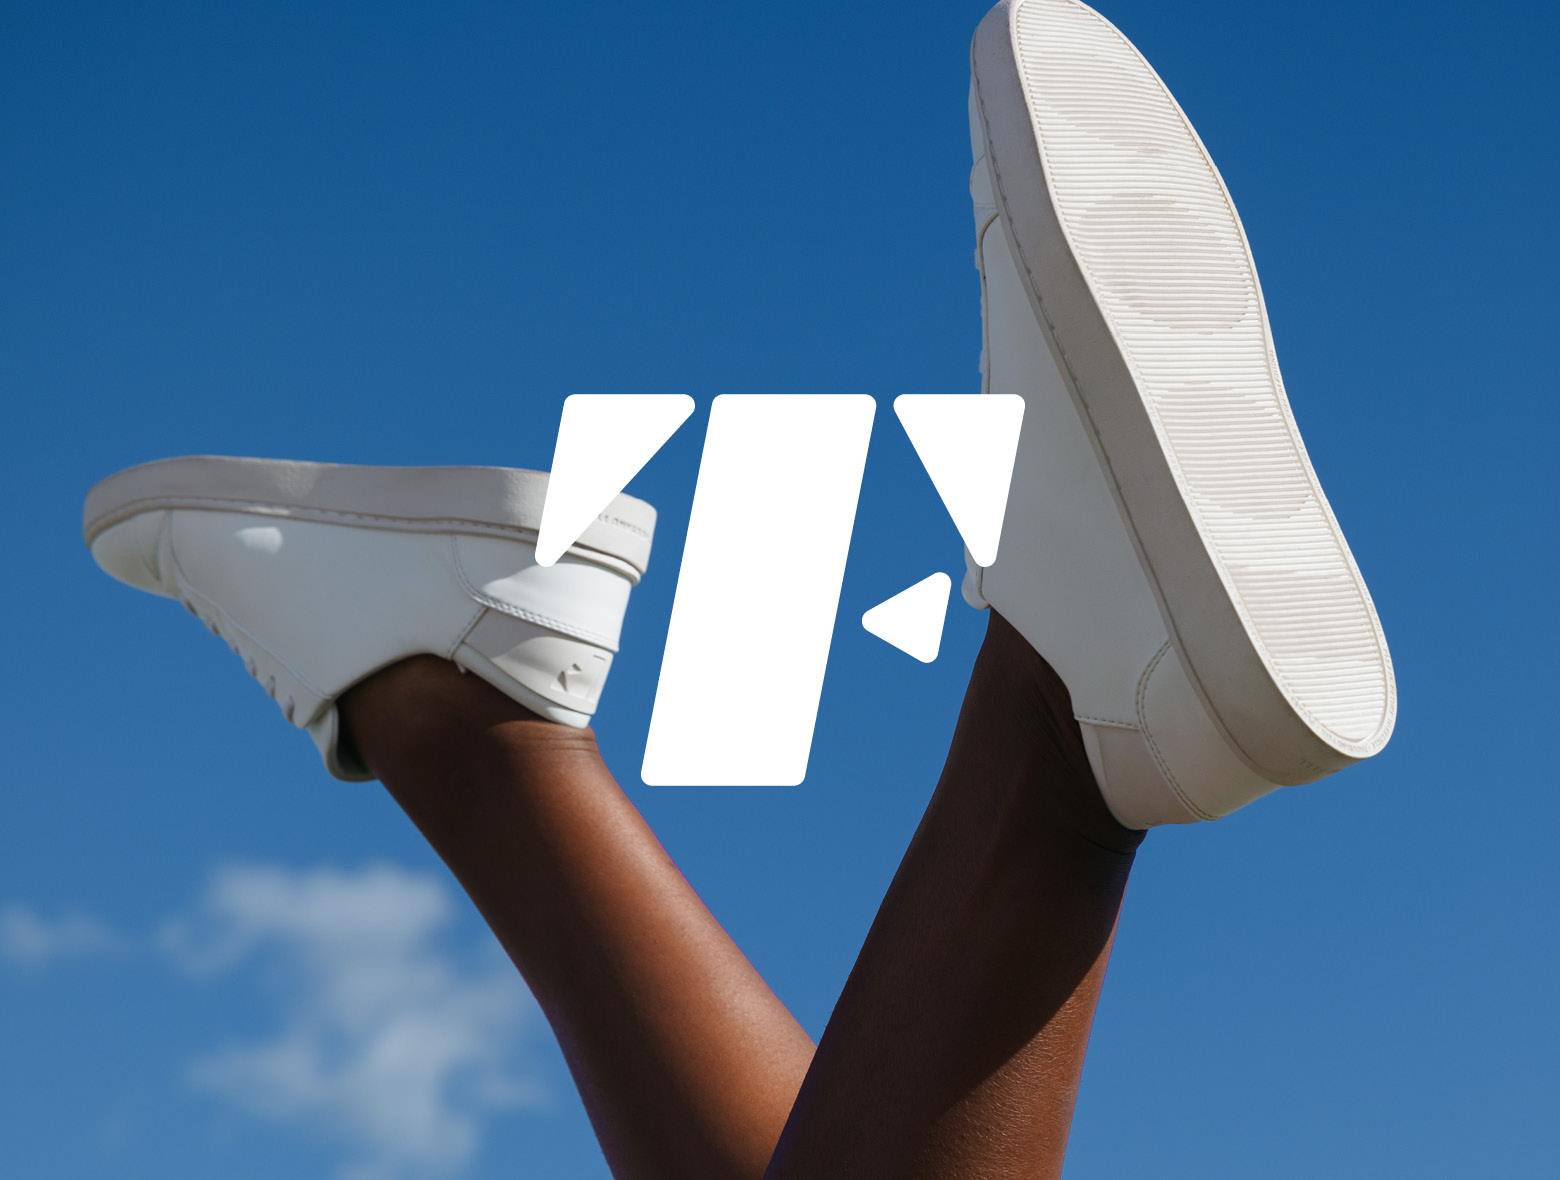 White shoes against a blue-sky